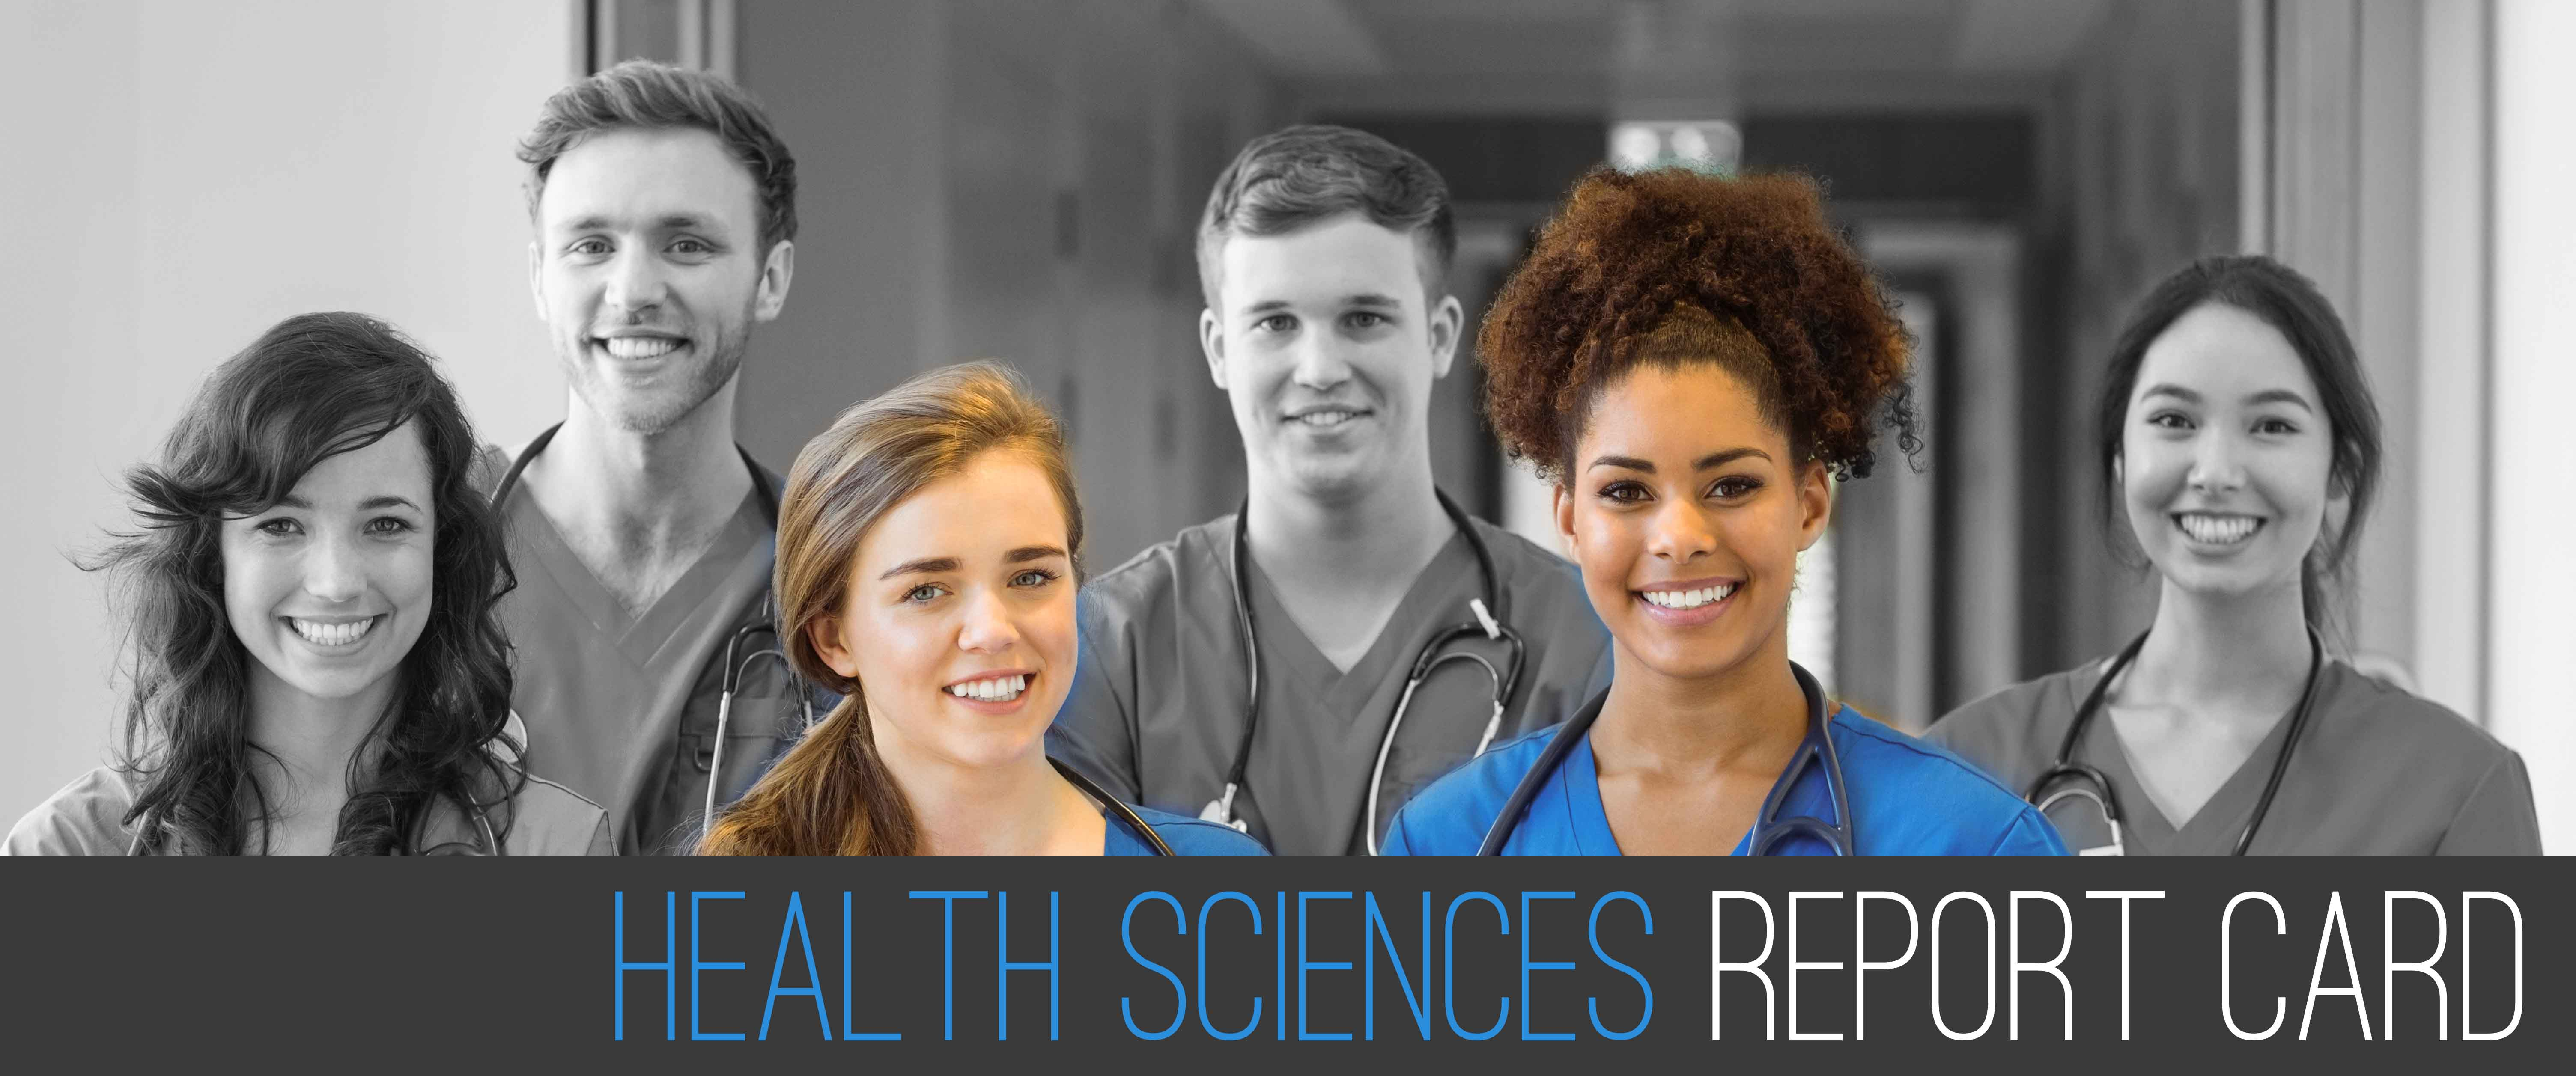 Health Sciences Report Card image